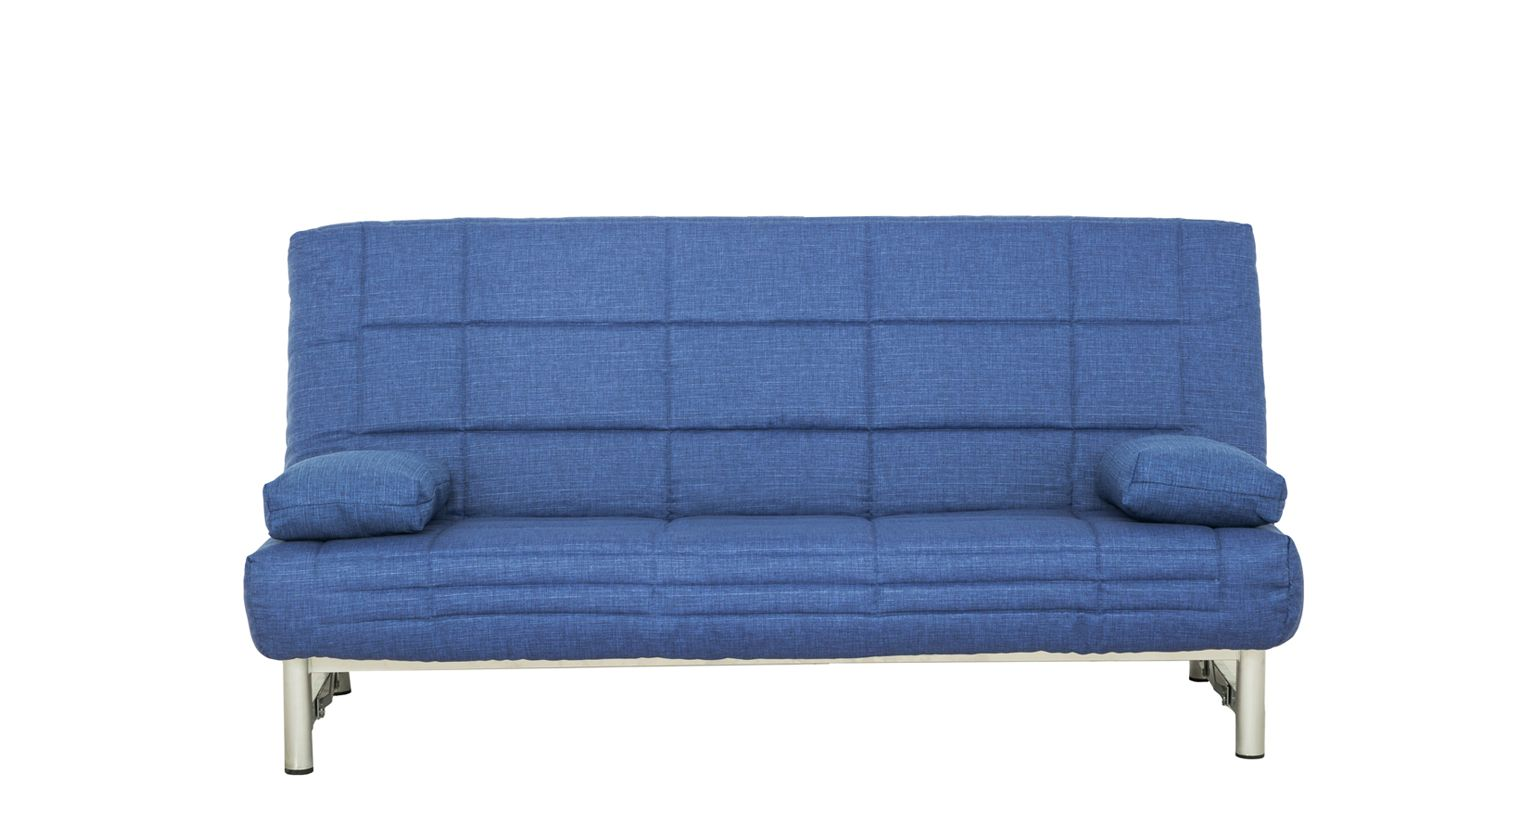 Sofa cama barato madrid for Ofertas camas madrid